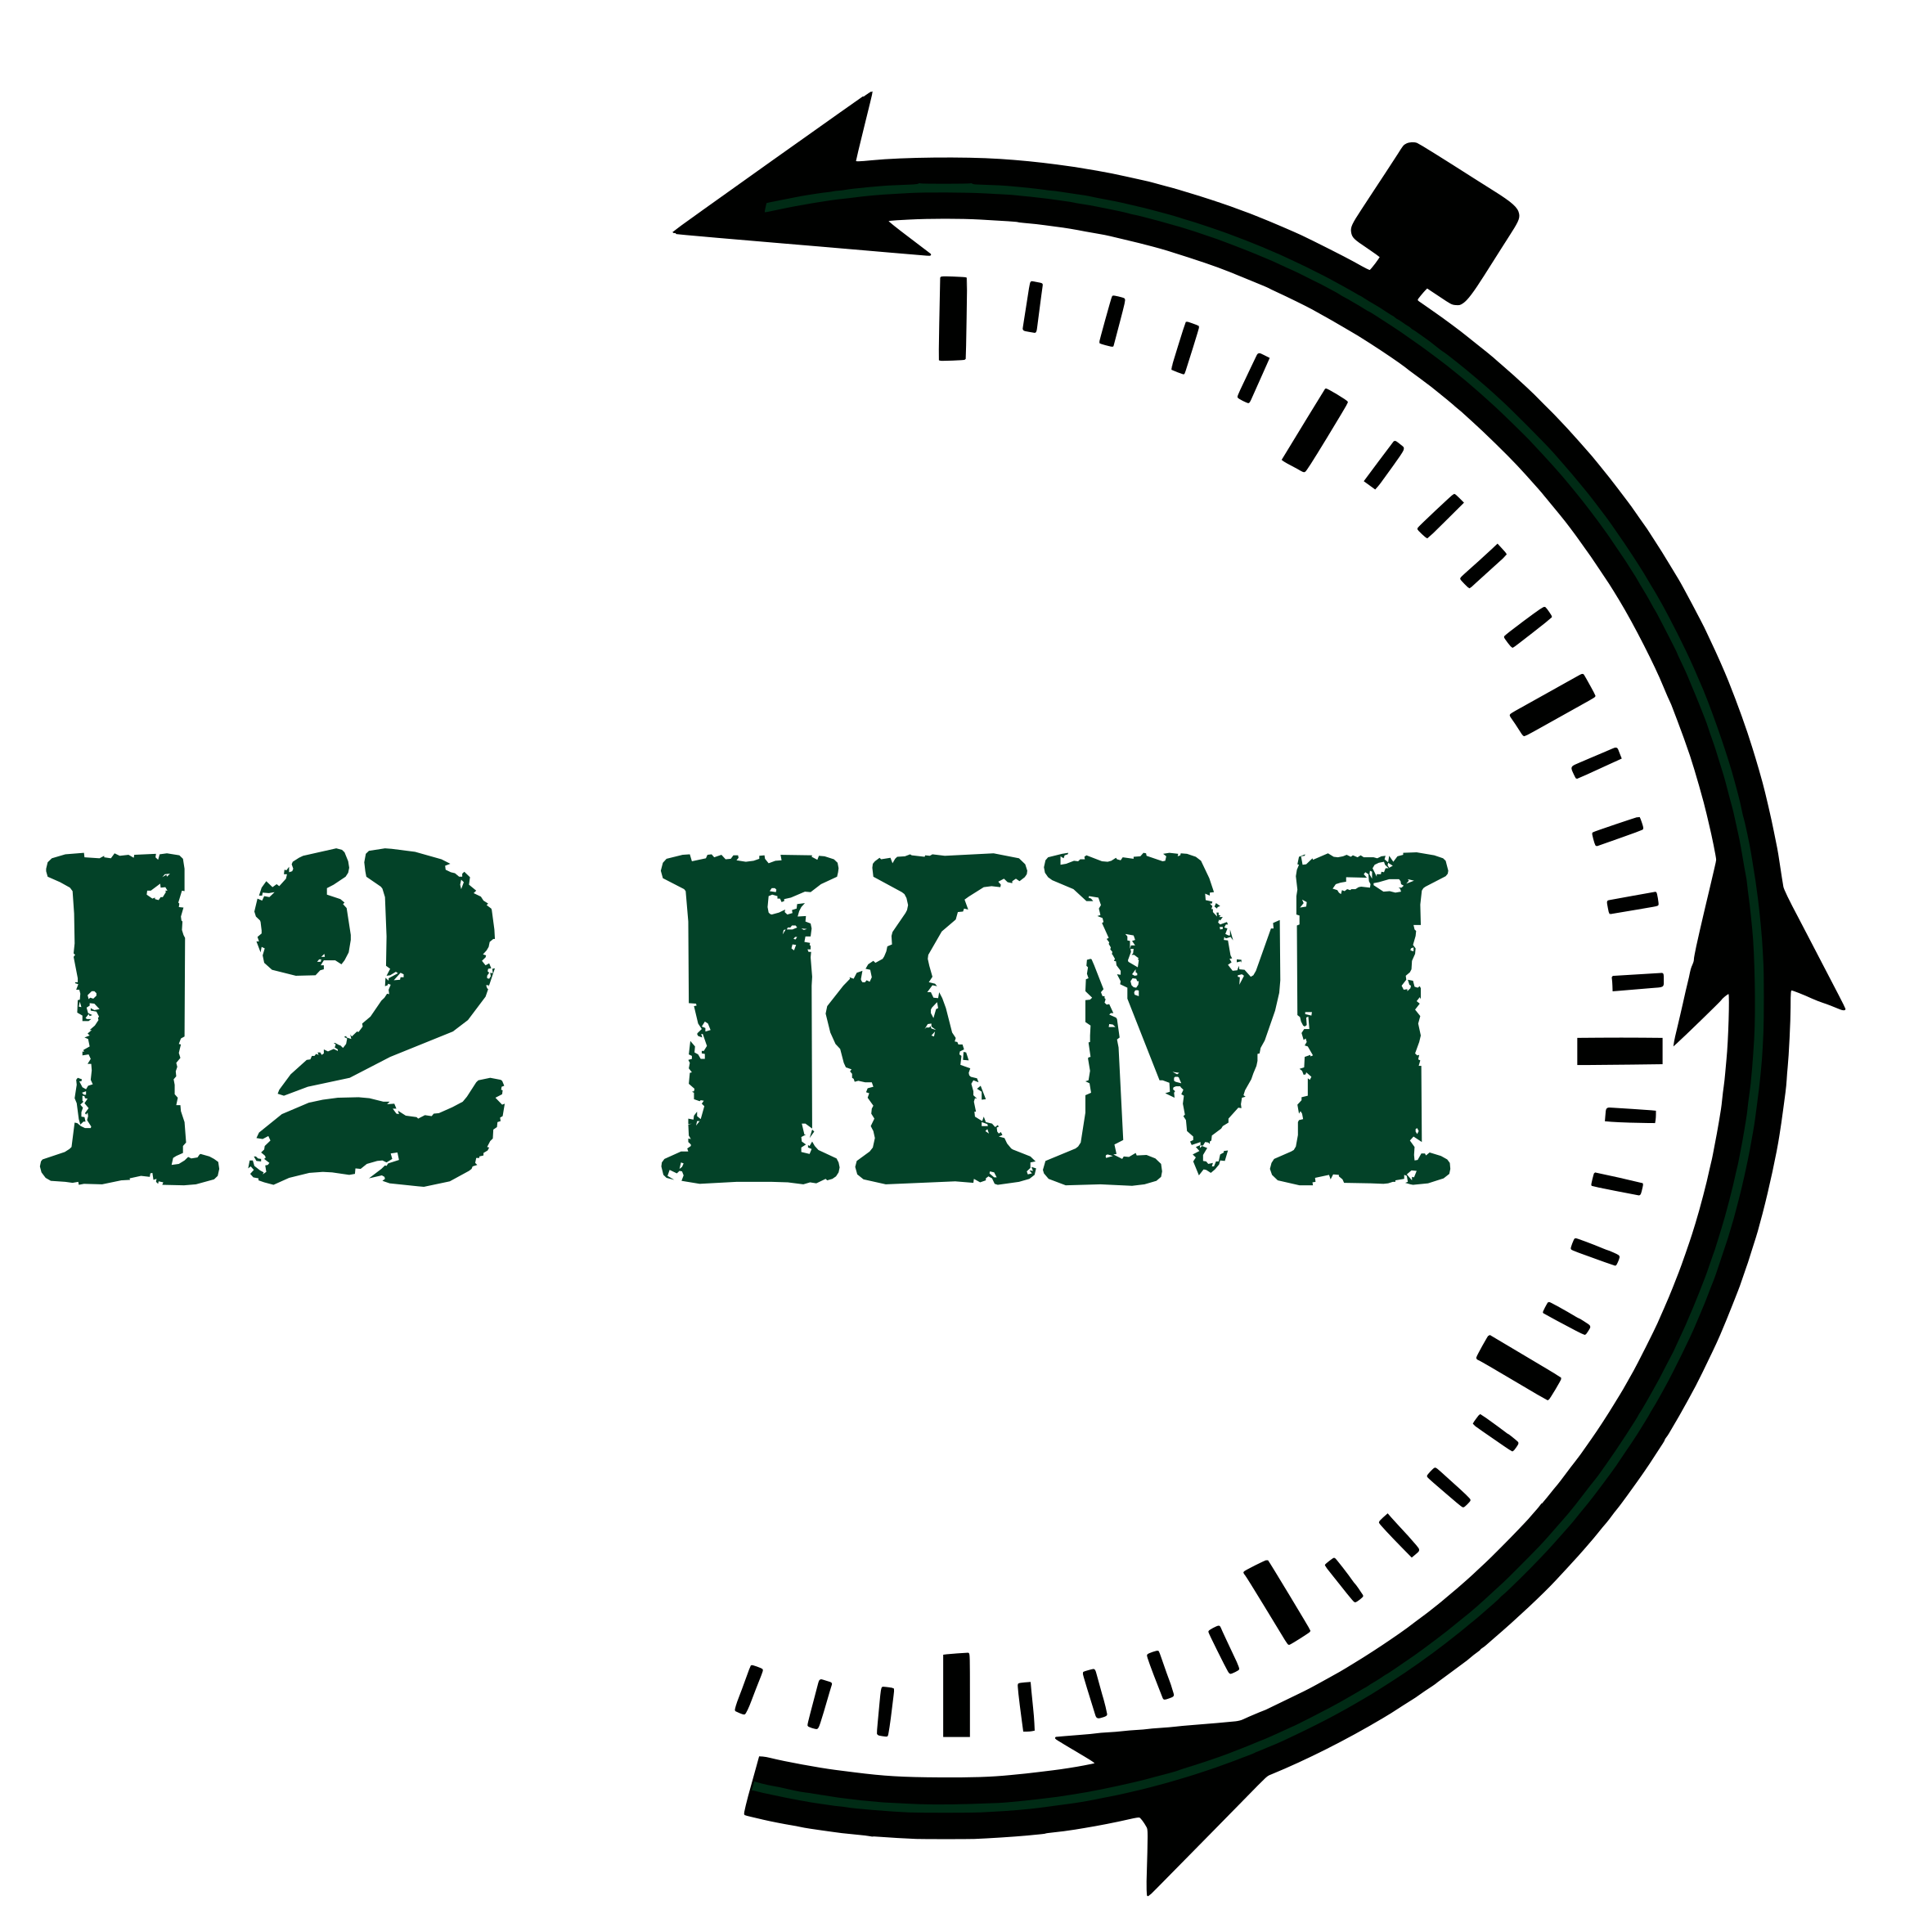 LOGO 12kms cercle